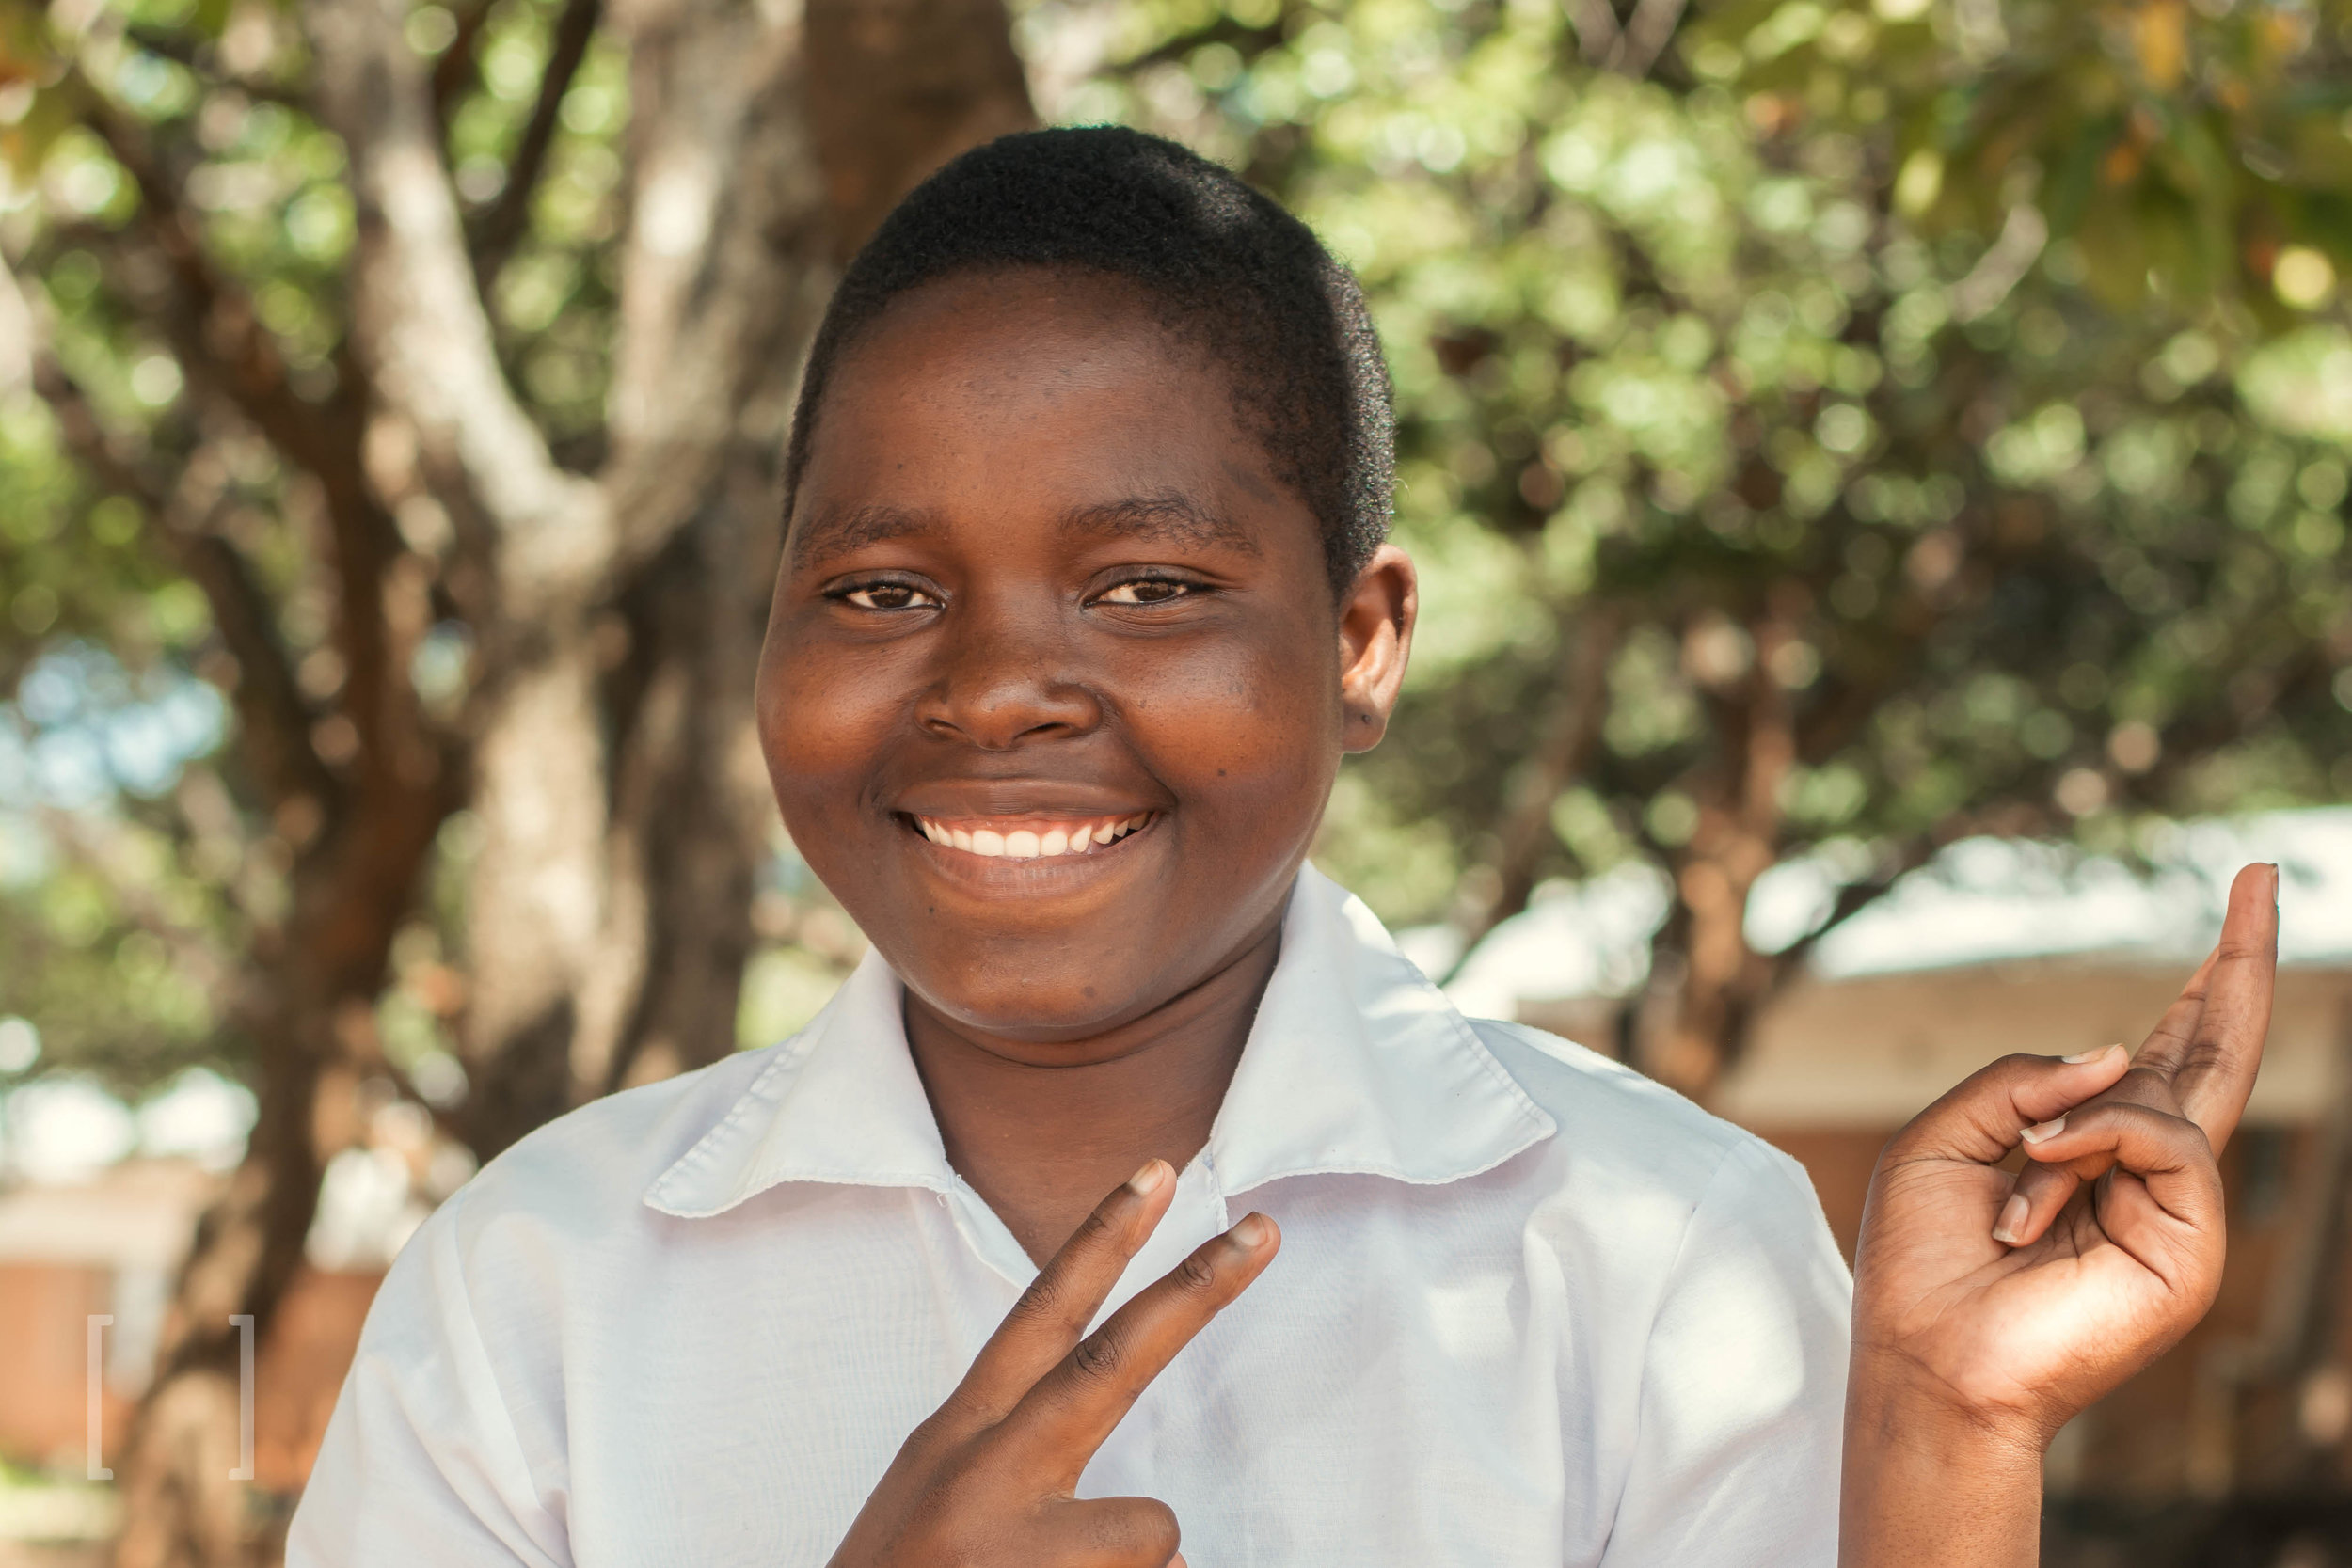 Ziwone - Ziwone was born on 9 October 2000. She lost her mother died during childbirth. She is doing well at Home of Hope and enjoys drawing and colouring. Ziwone would like to be a nurse one day. Support her on her educational journey!